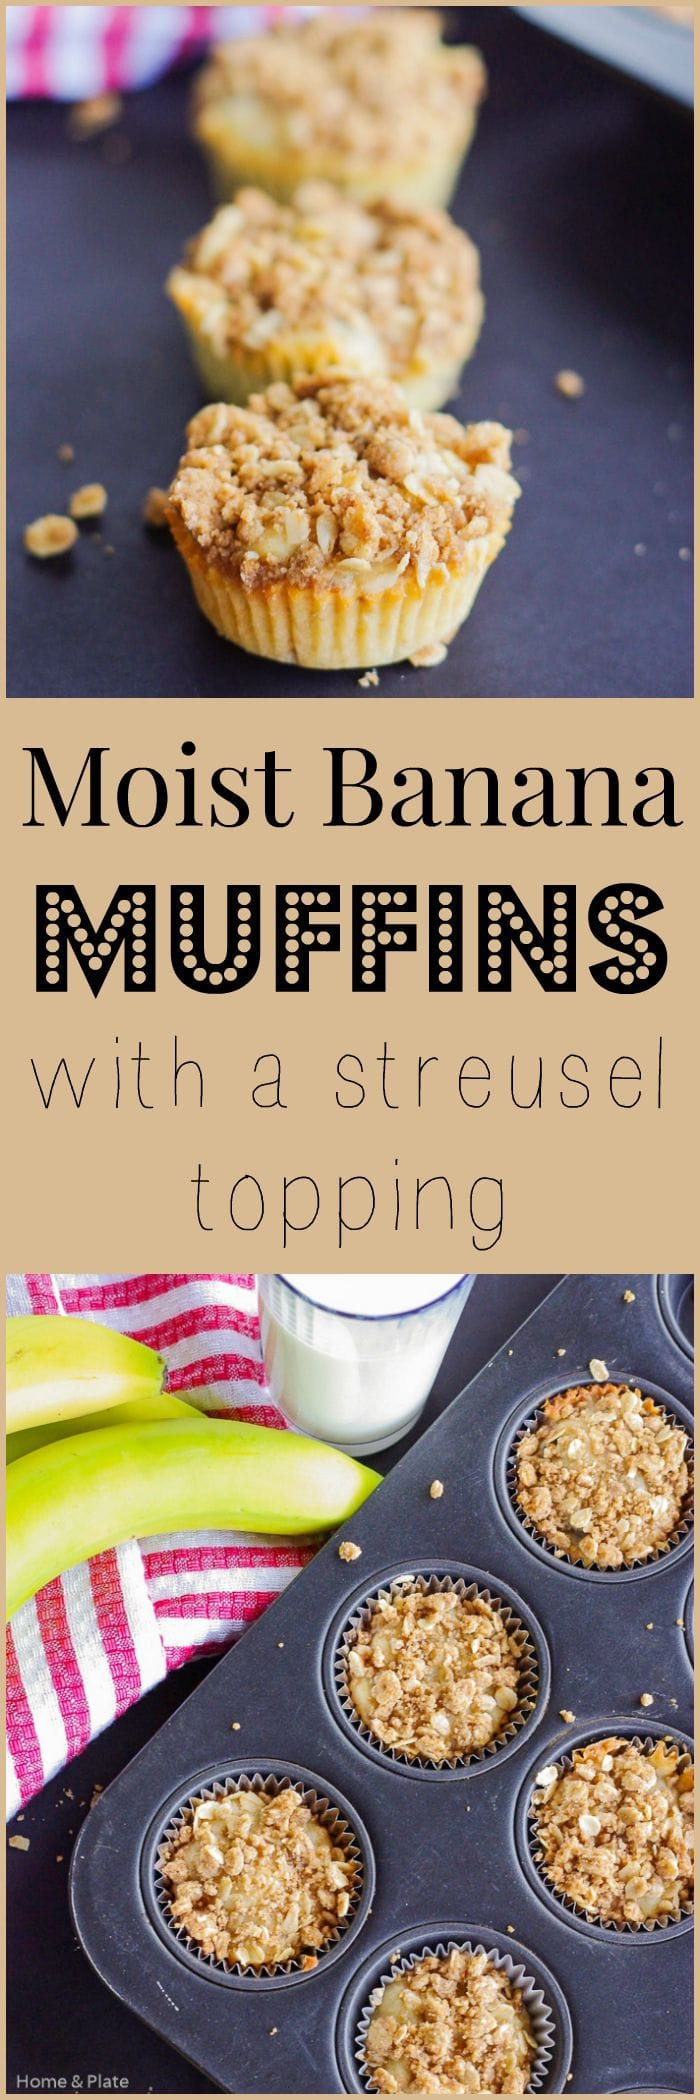 Moist Banana Muffins With A Streusel Topping | Home & Plate | www.homeandplate.com | Don